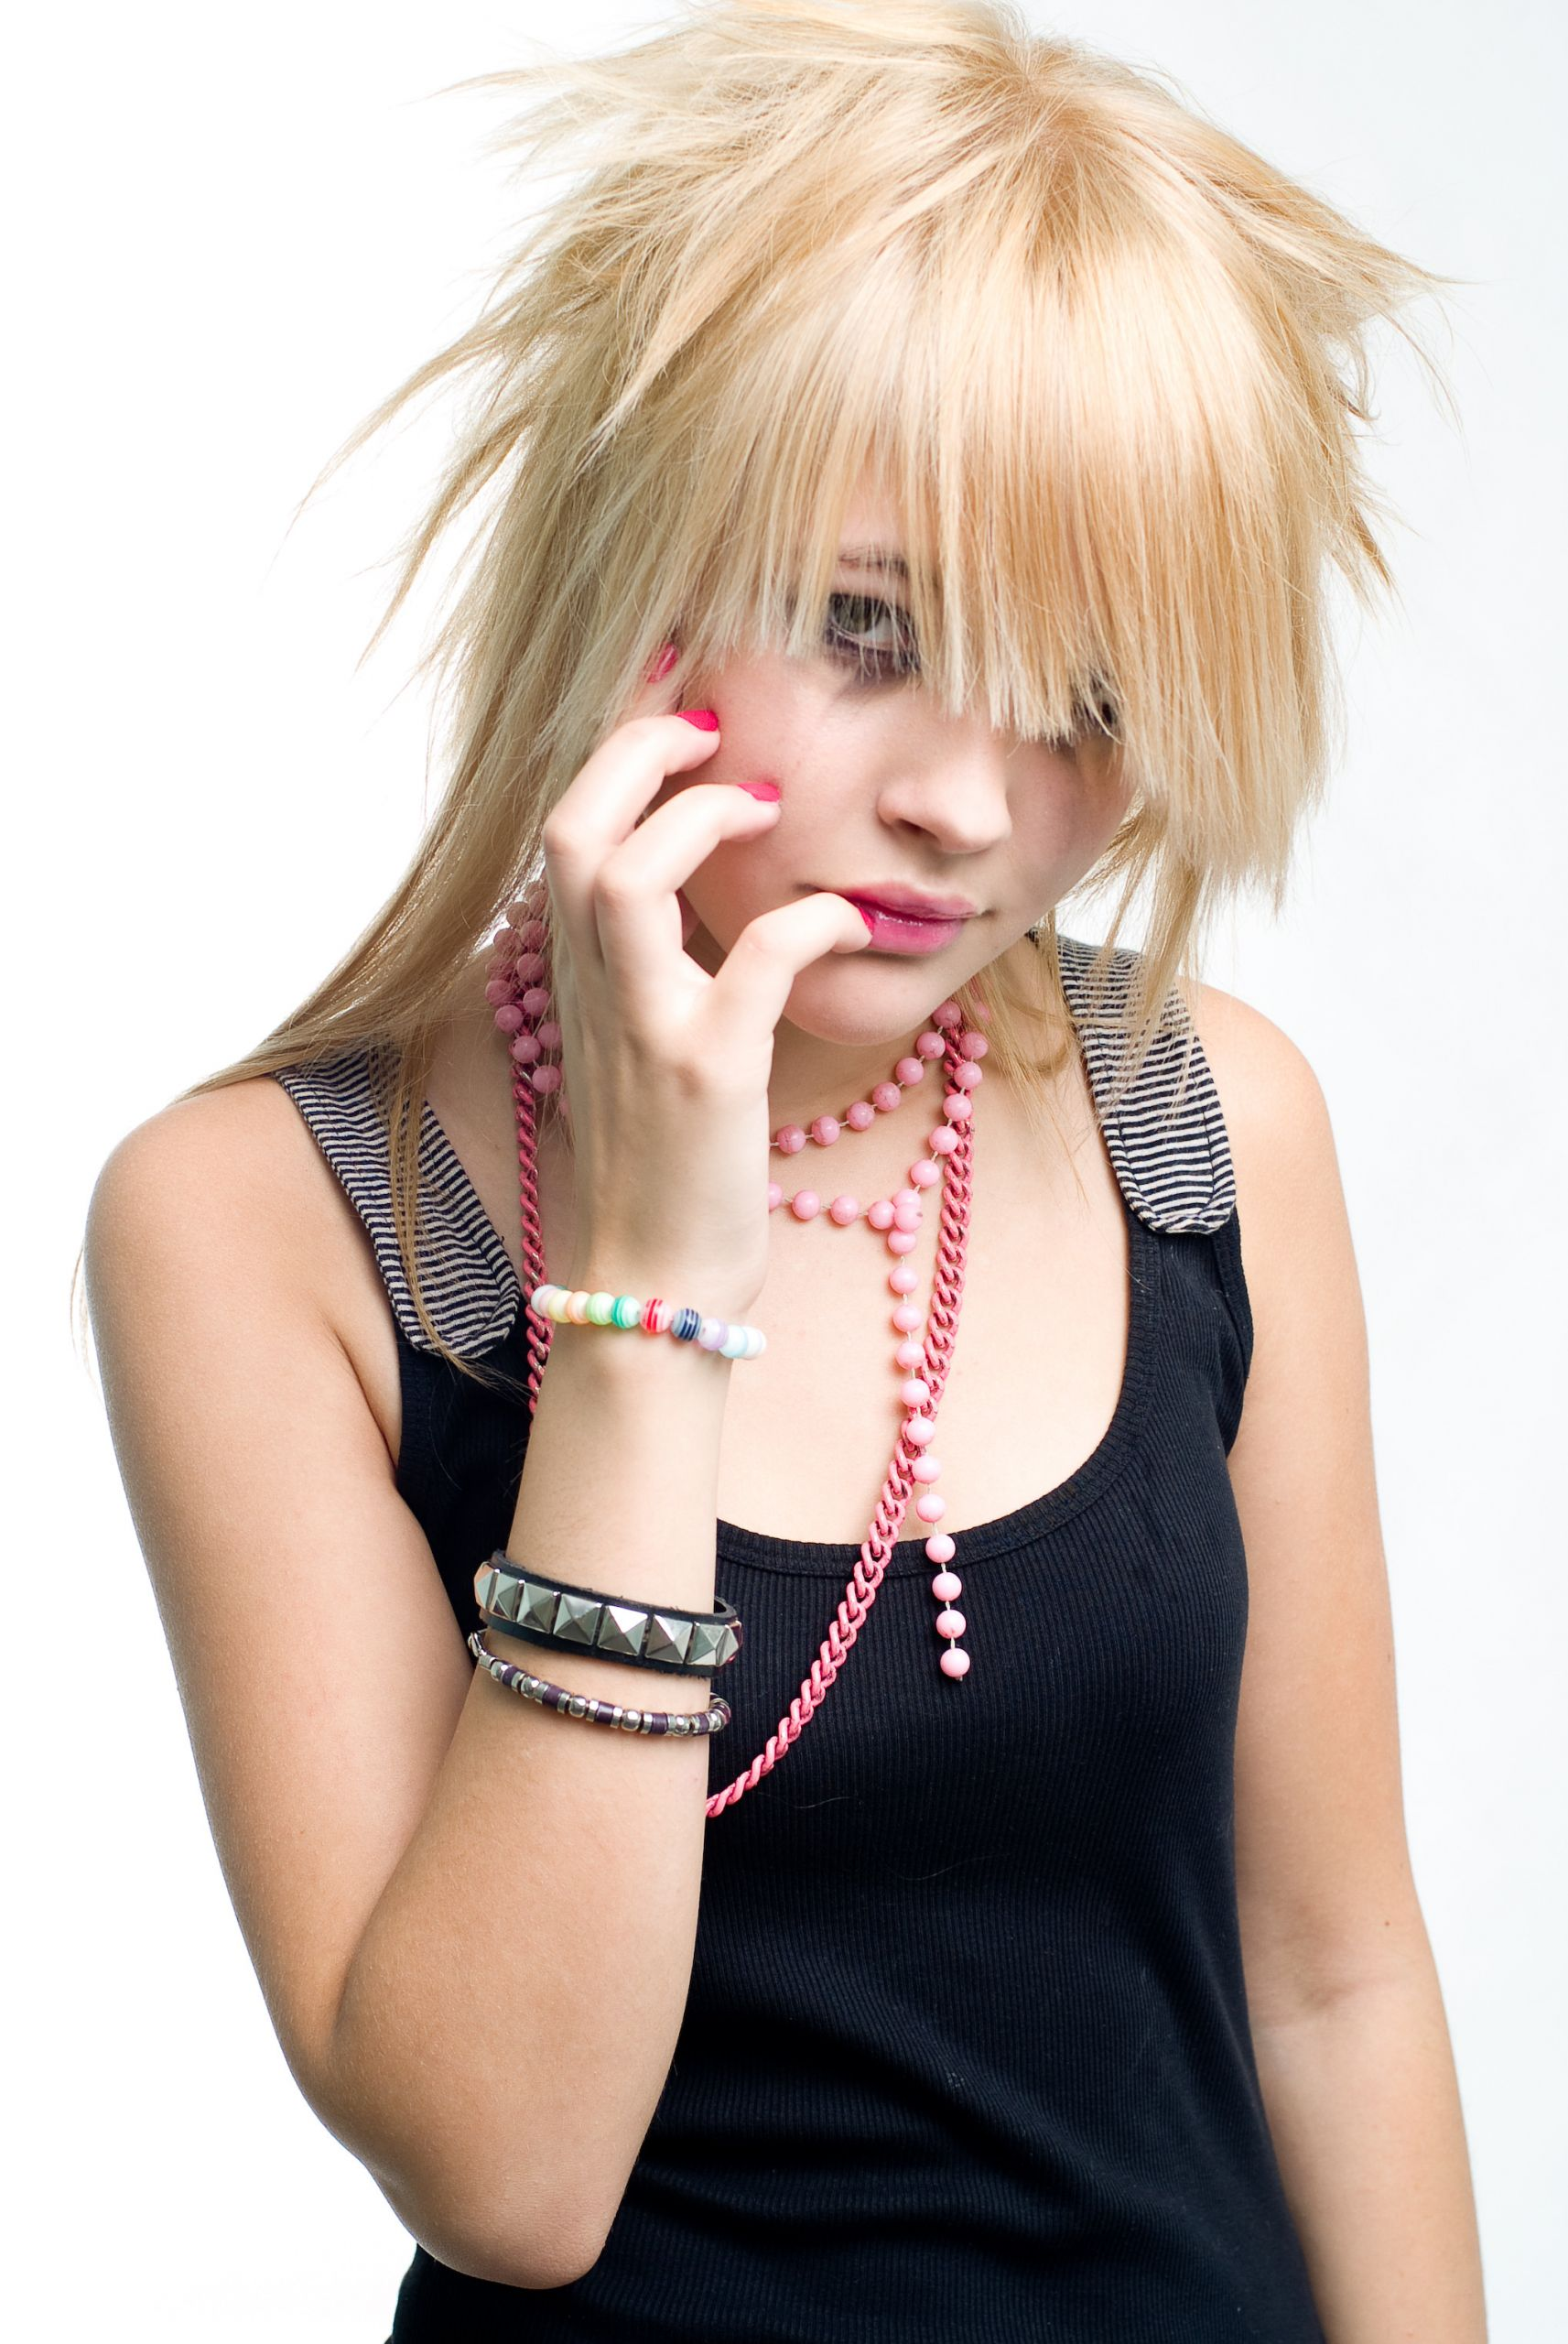 Hairstyle For Girls  42 Scene Hairstyles Ideas For Girls InspirationSeek